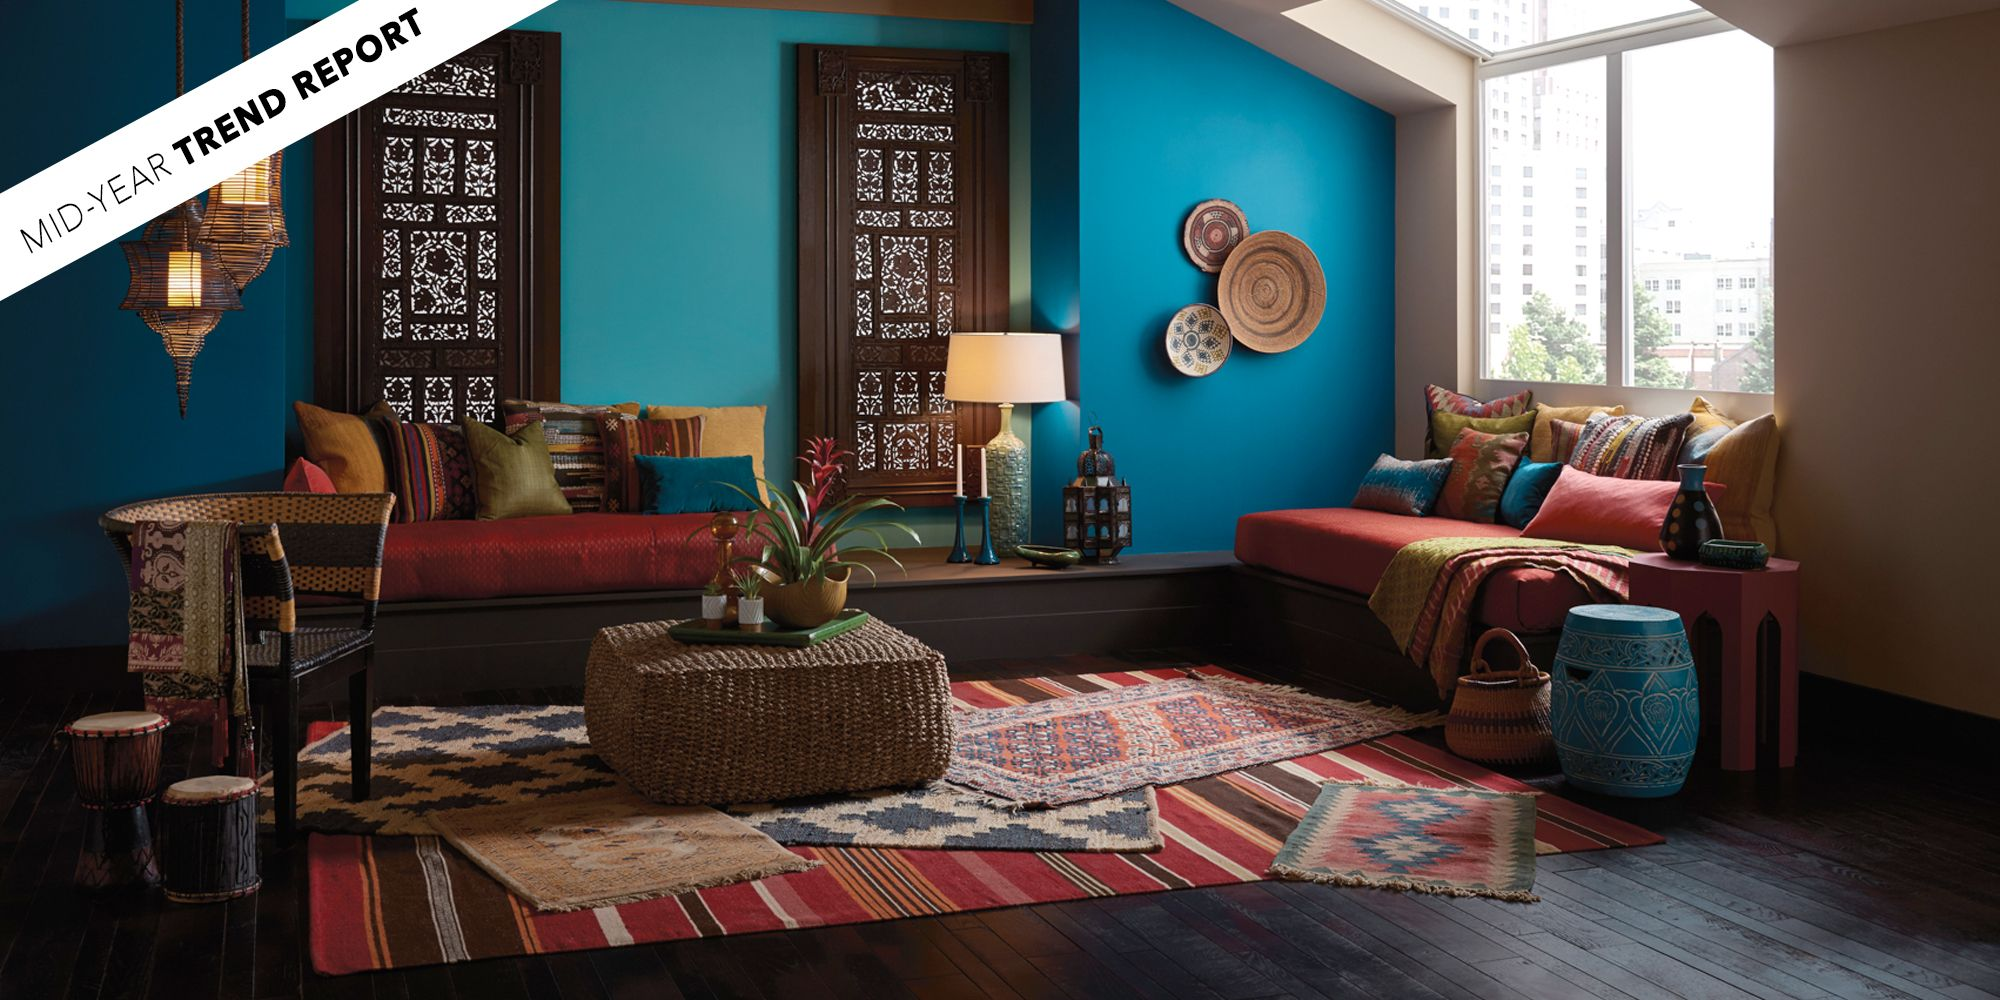 Color Trends Simple Biggest Color Trends Of 2017 So Far  Interior Design Color Trends Decorating Design